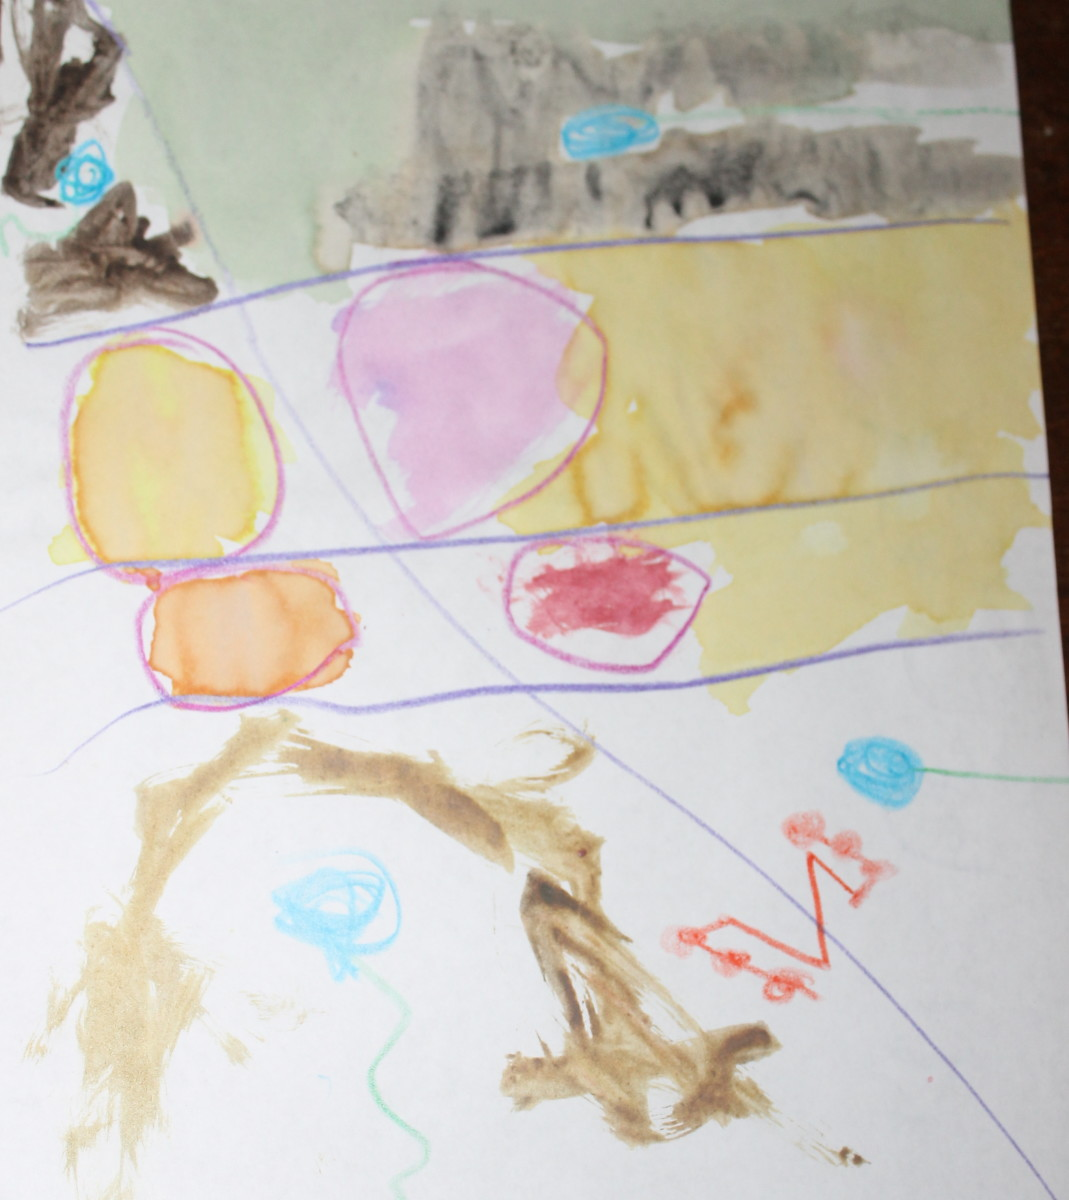 Abstract painting done by a 5 year old